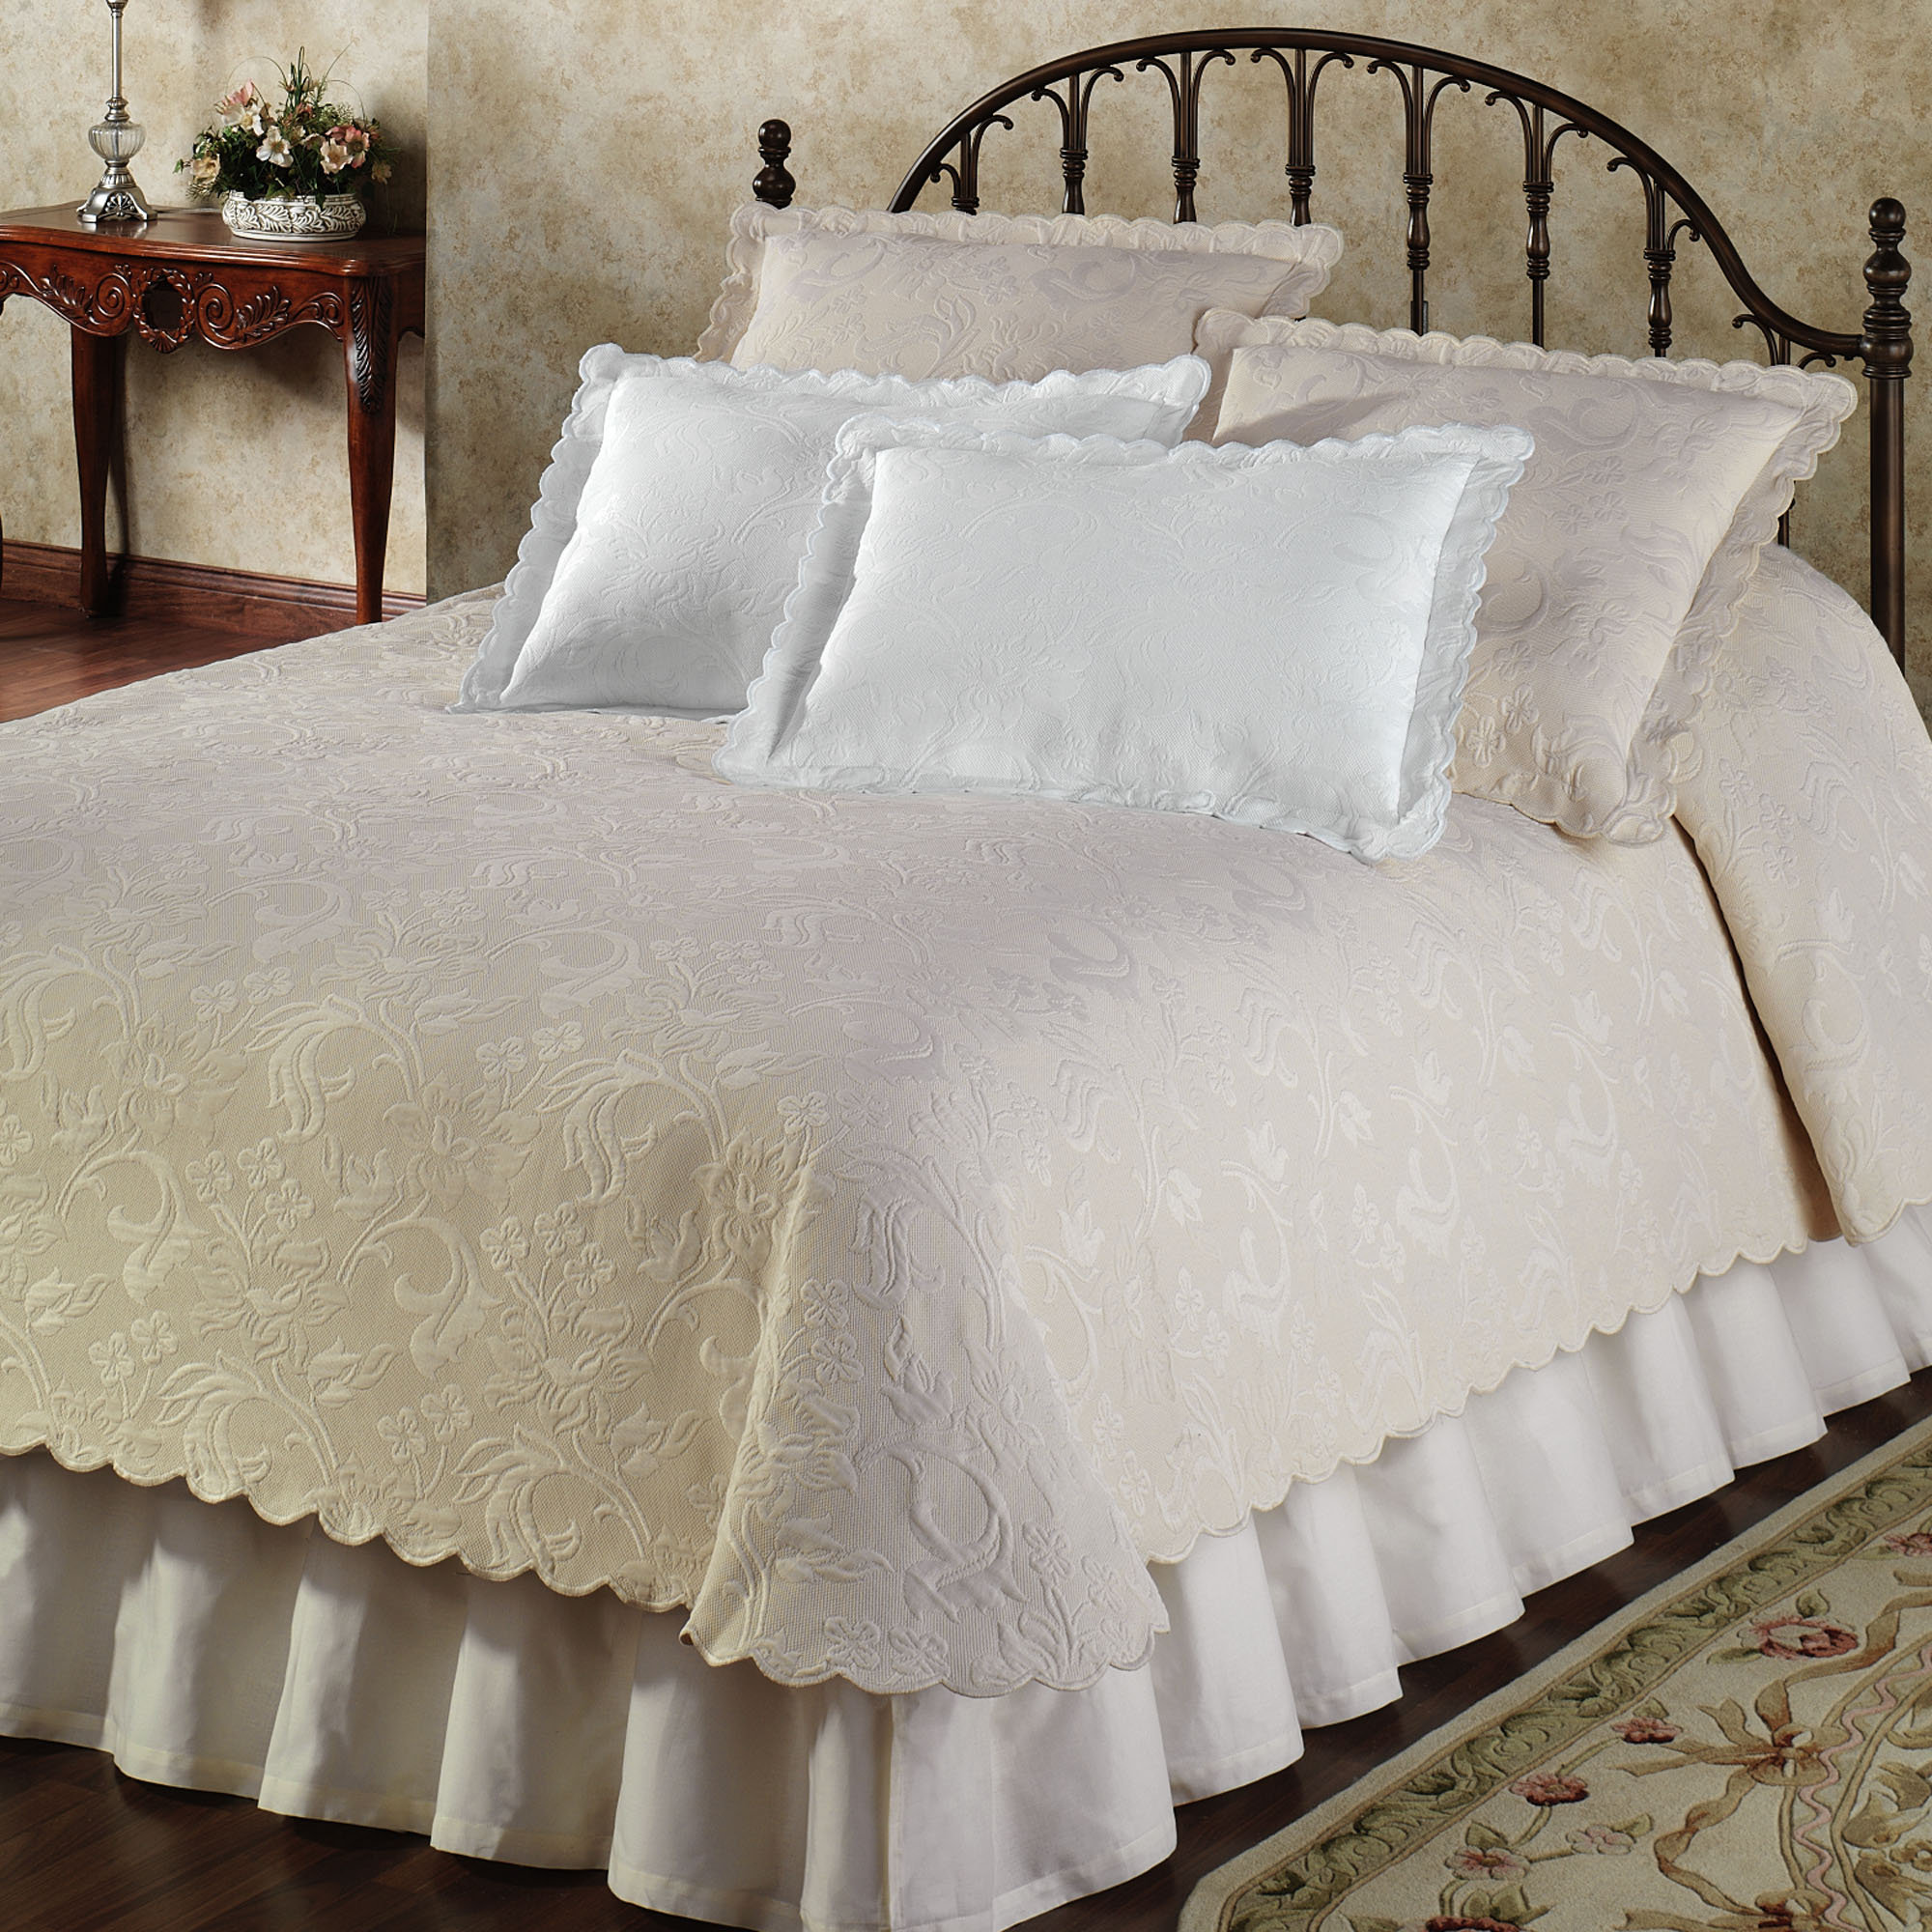 Marvelous Elegant White Coverlet A Kingbed Furniture Beautiful And Expensive Rug For  Bedroom Classic Wood Finishing